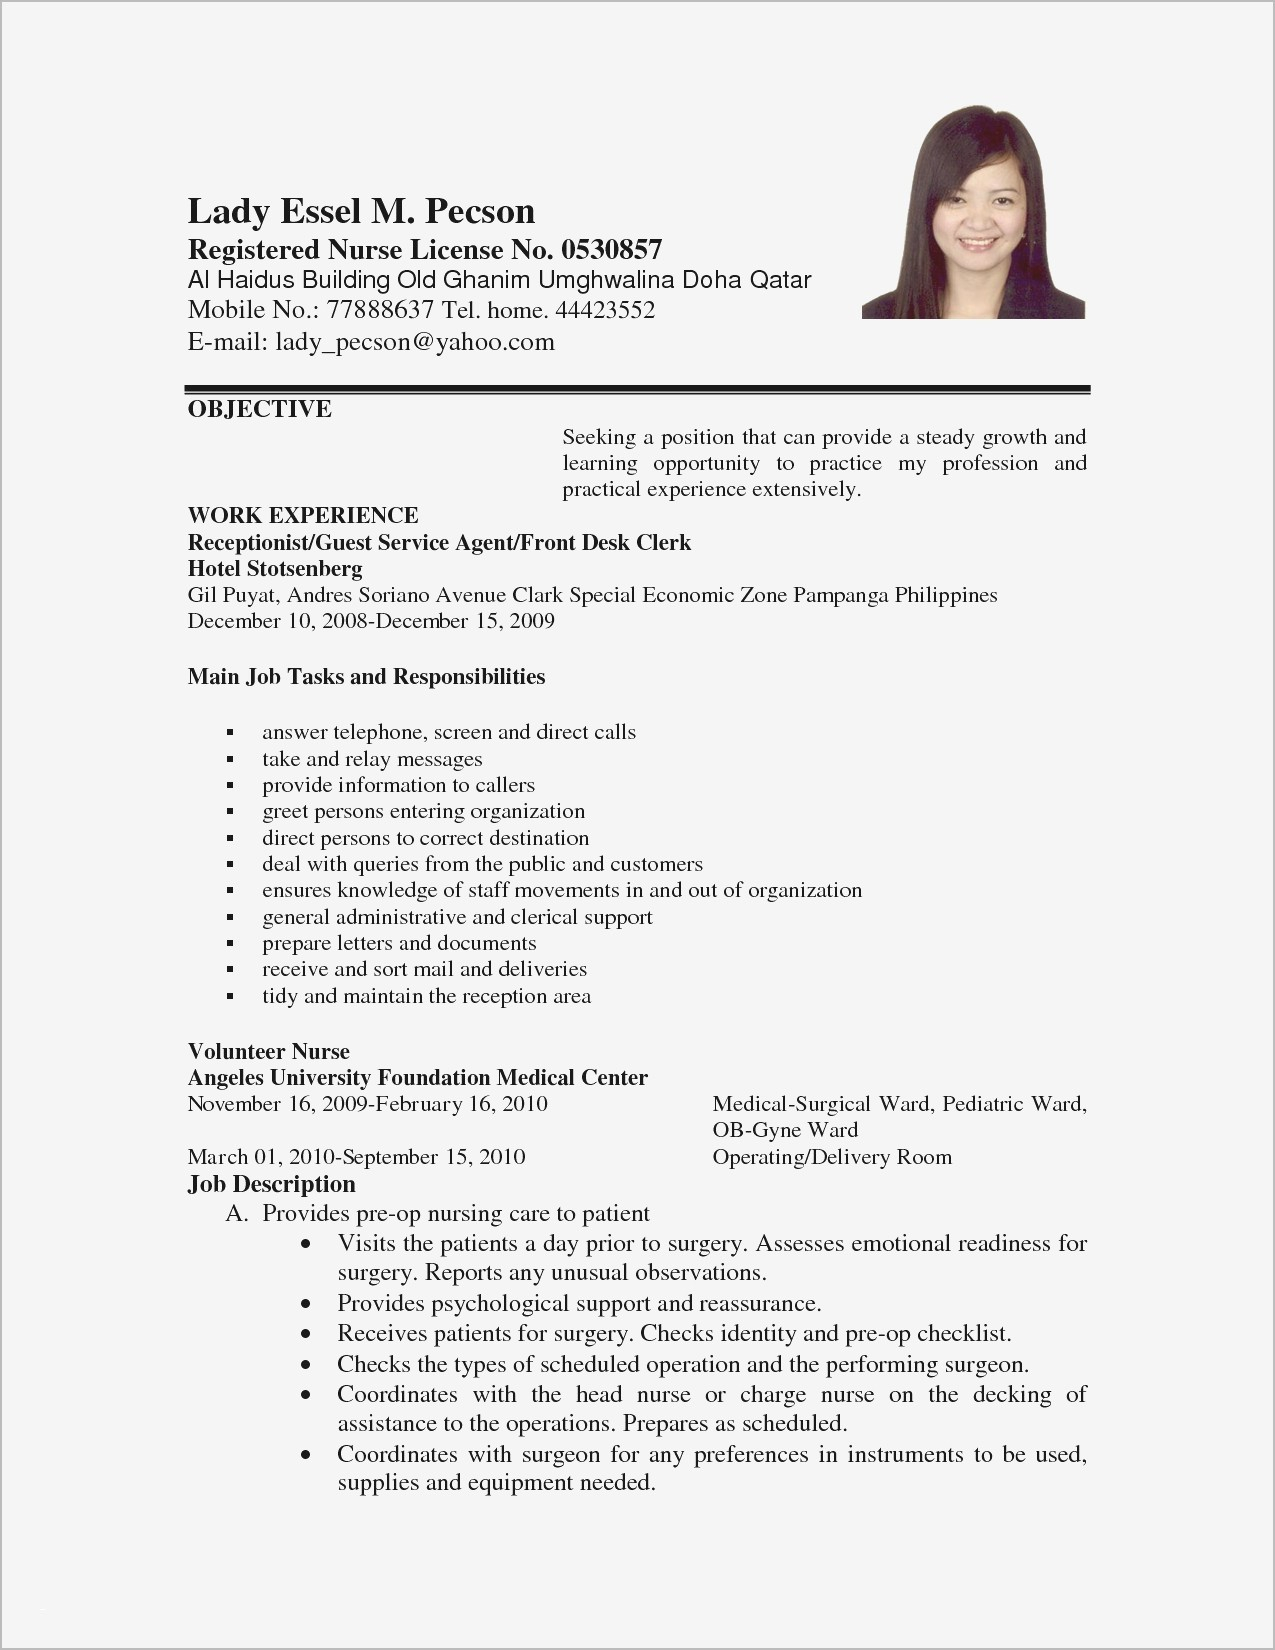 Skills for Paralegal Resume - Puter Skills Resume Lovely Awesome Research Skills Resume New